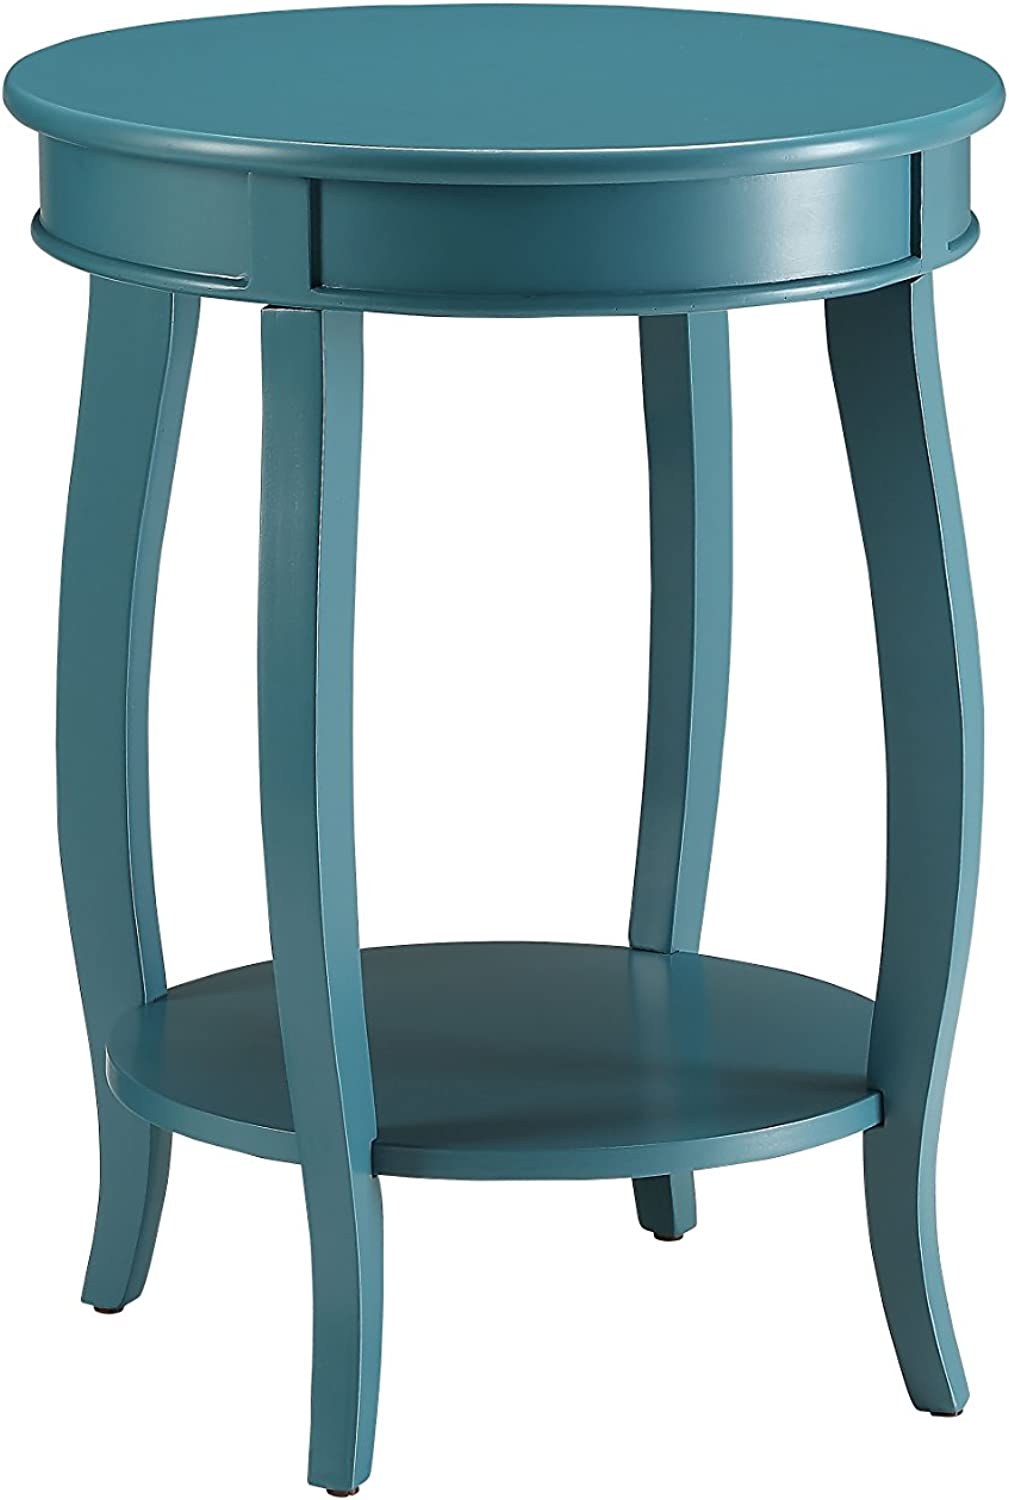 ACME Furniture Acme 82790 Aberta Side Table, Teal, One Size